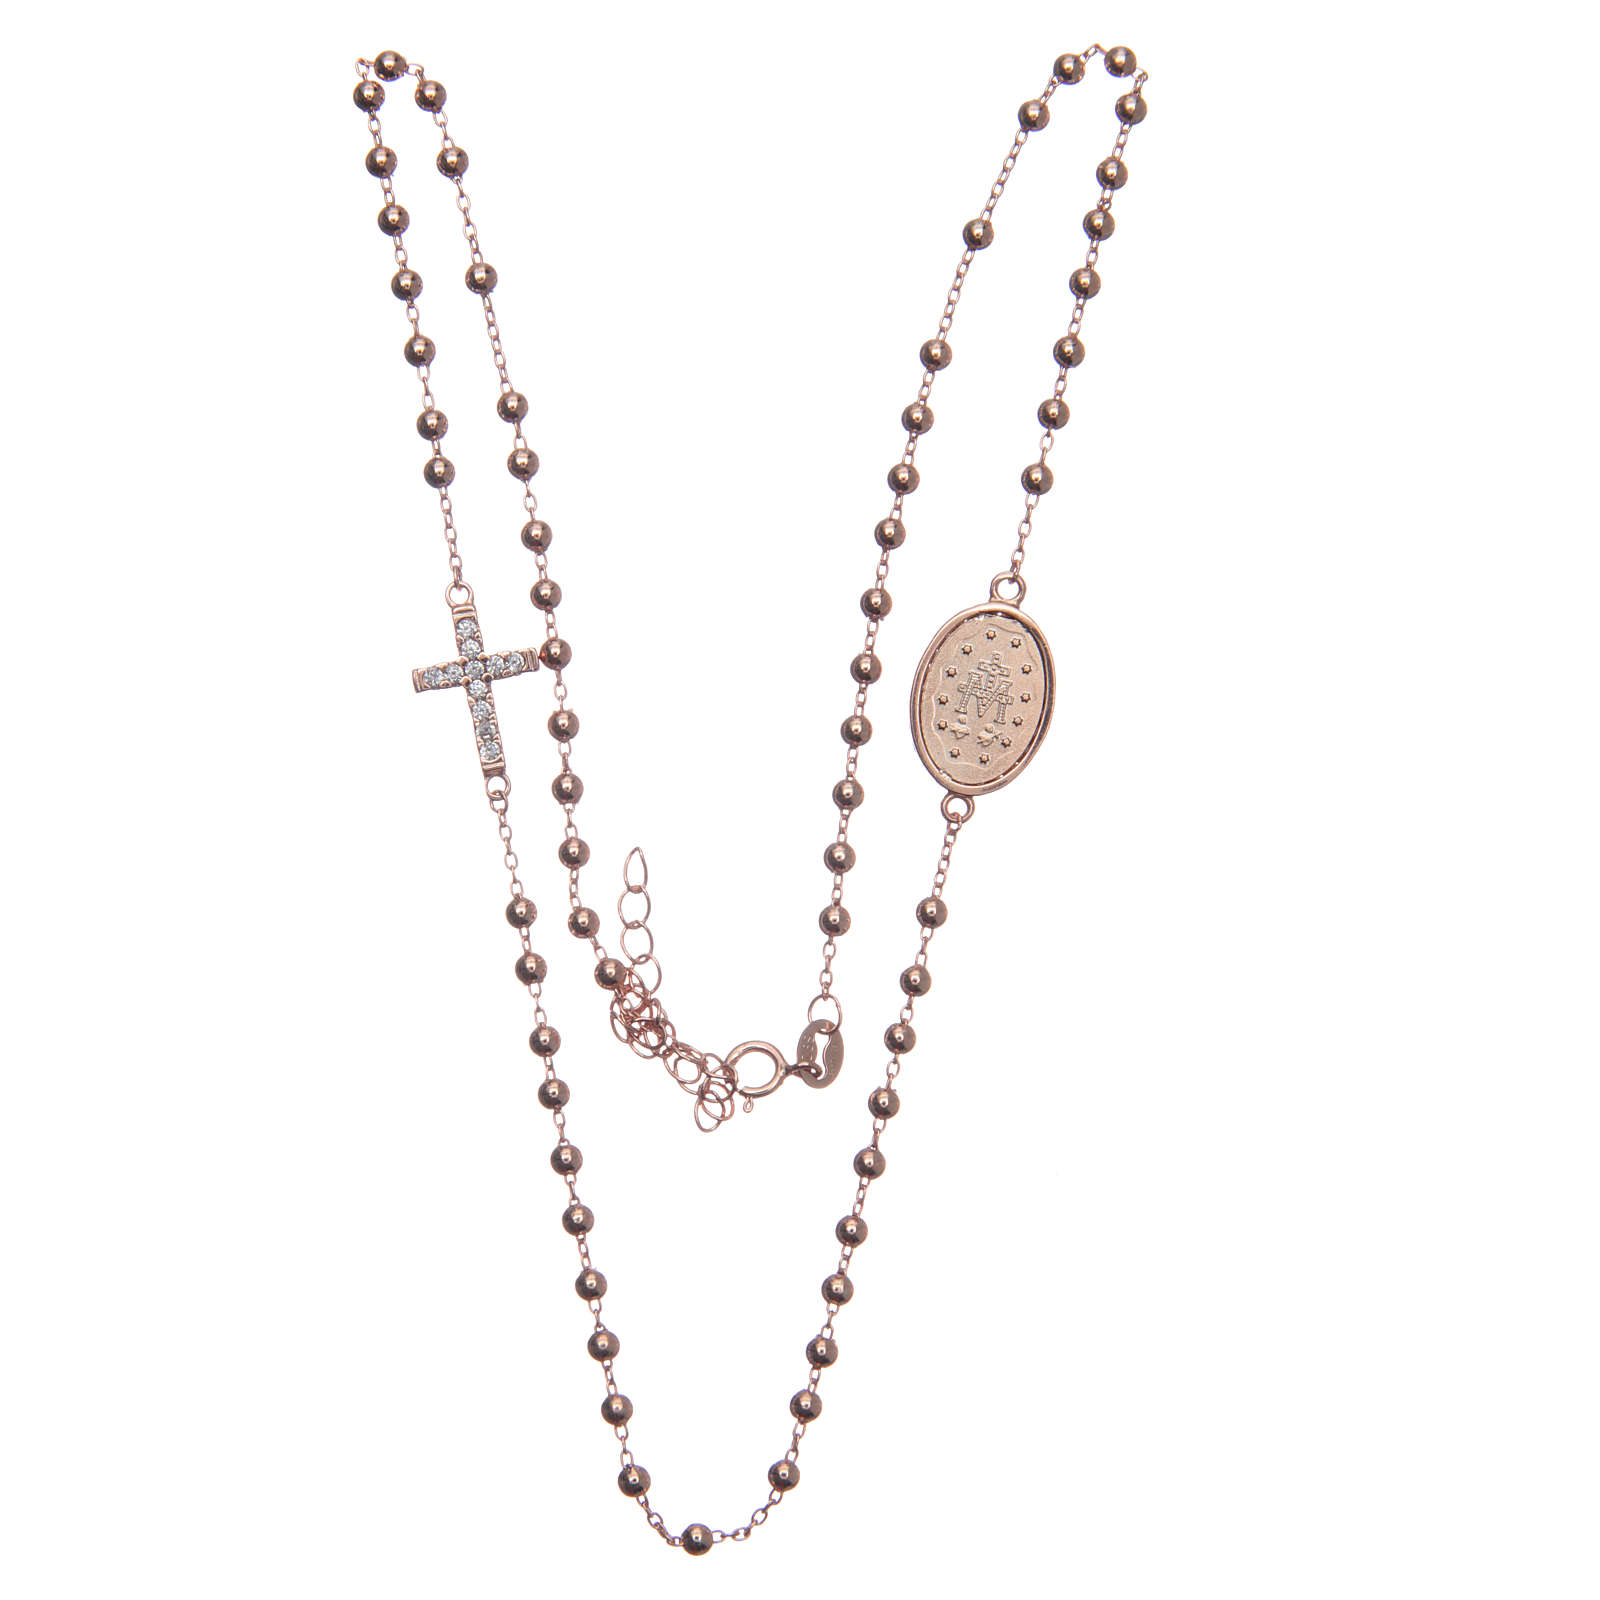 Rosary choker rosè with white zircons 925 sterling silver 4